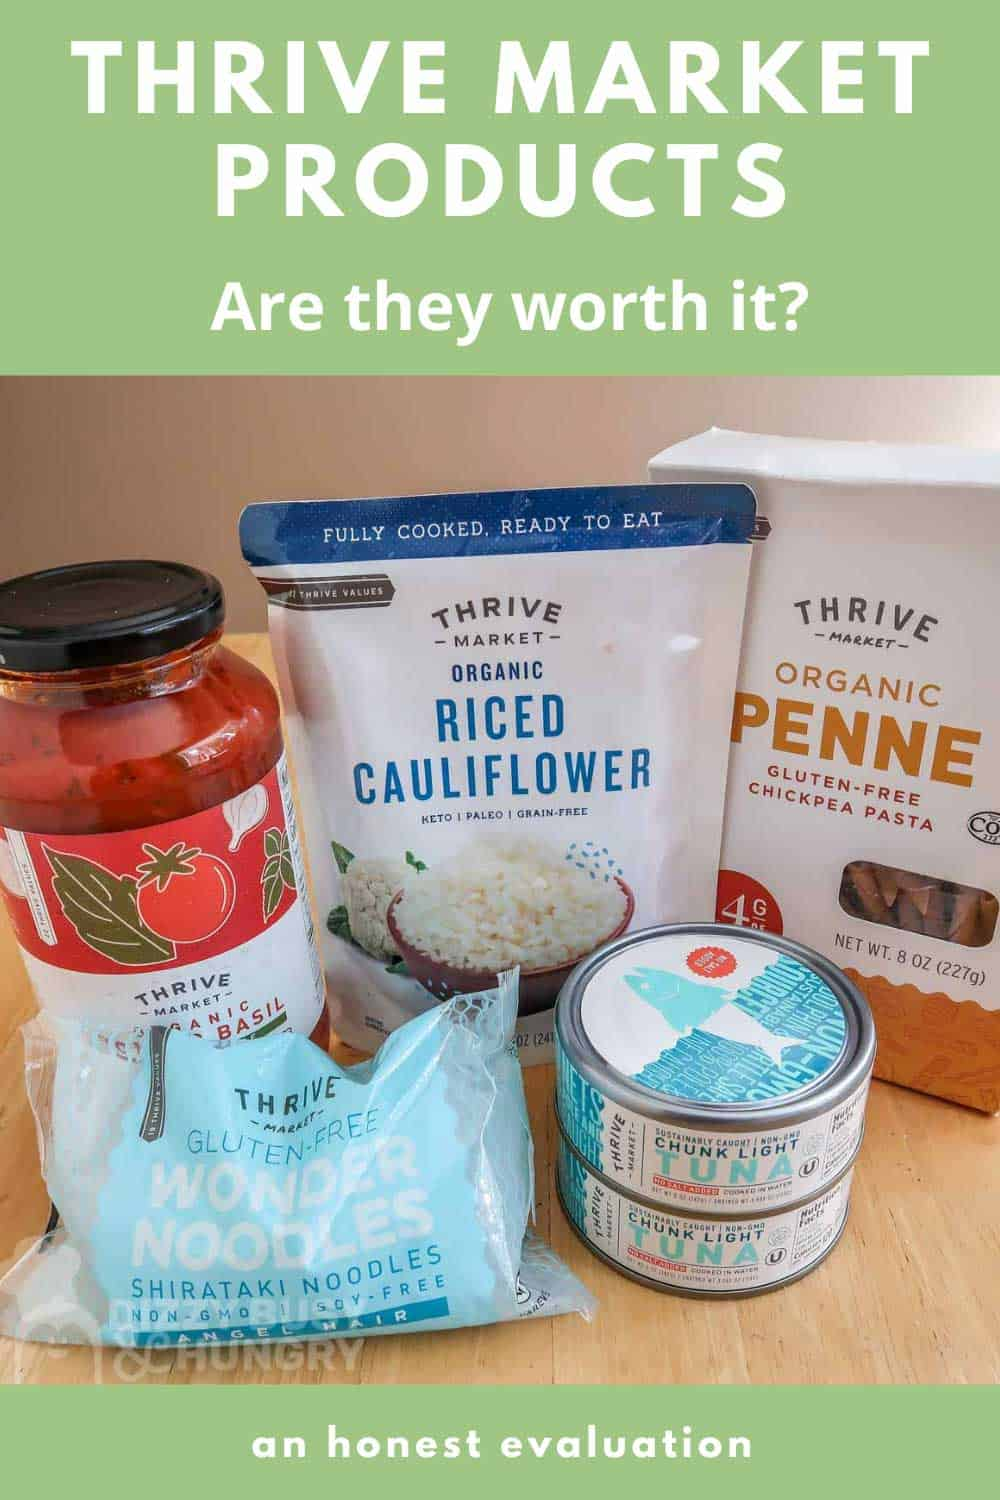 Photo of some thrive market pantry staples-pasta sauce, tuna, gluten-free pasta, riced cauliflower